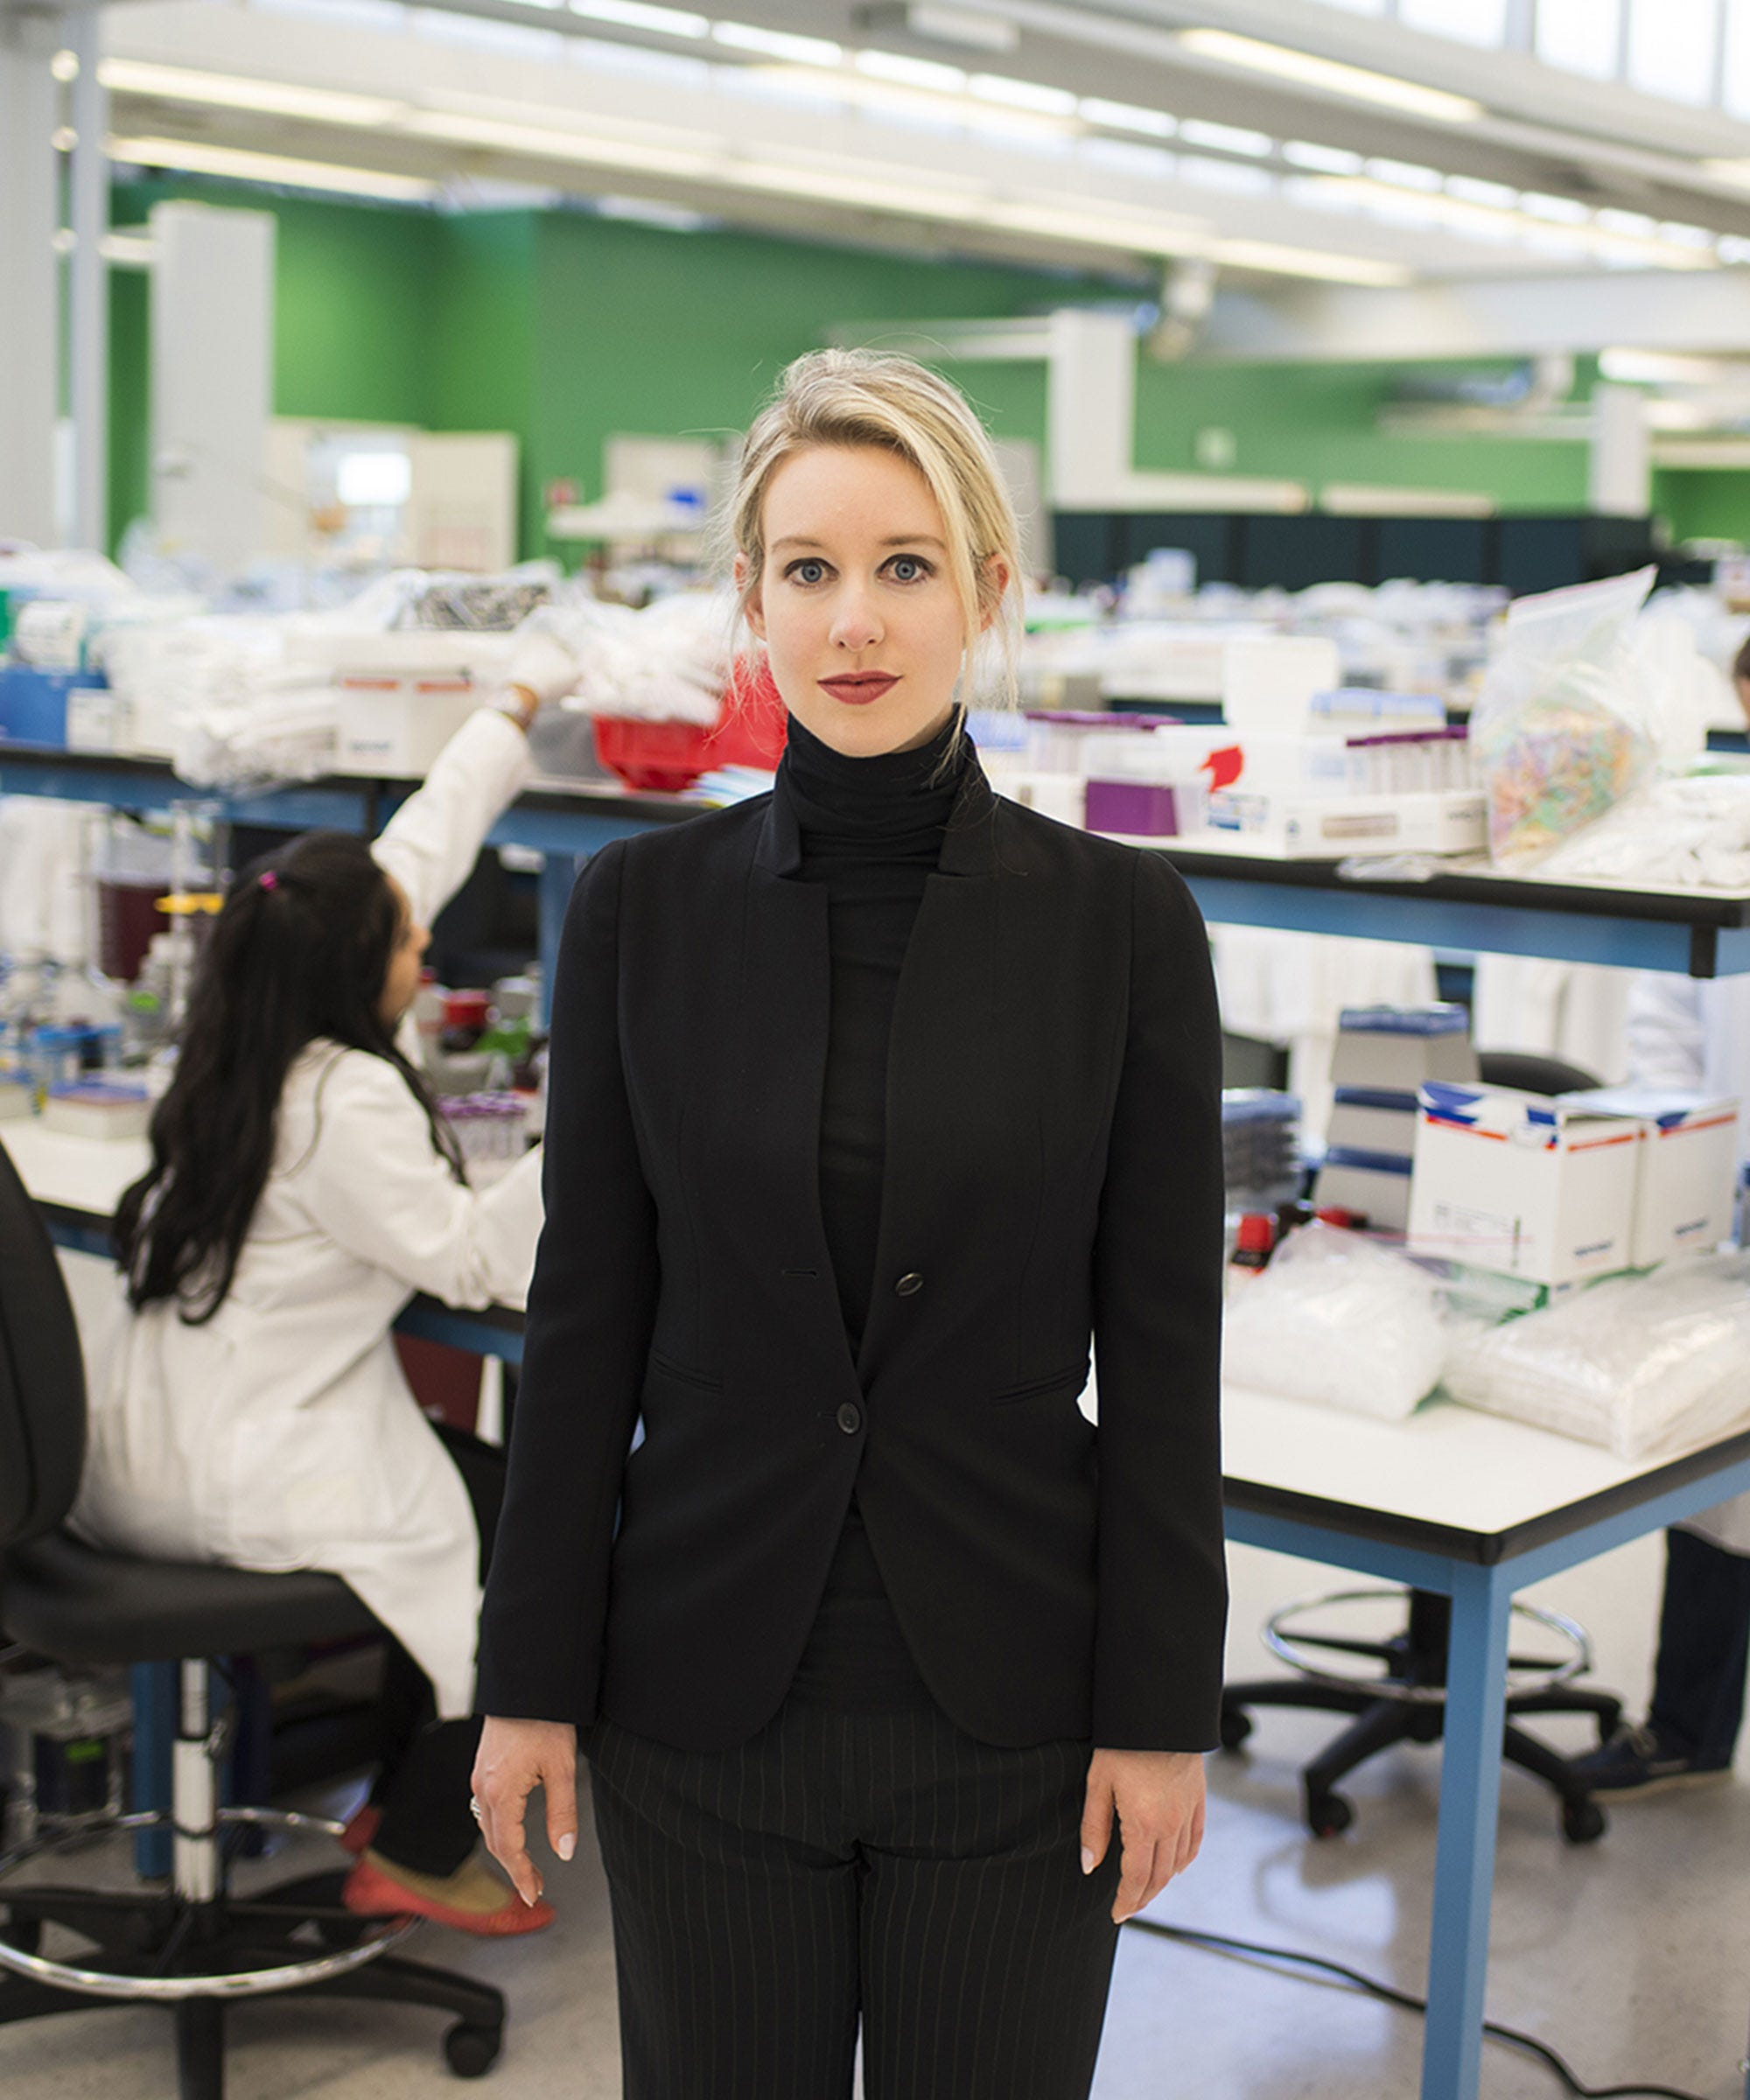 What It's Like To Know Elizabeth Holmes According To 3 People Who Do